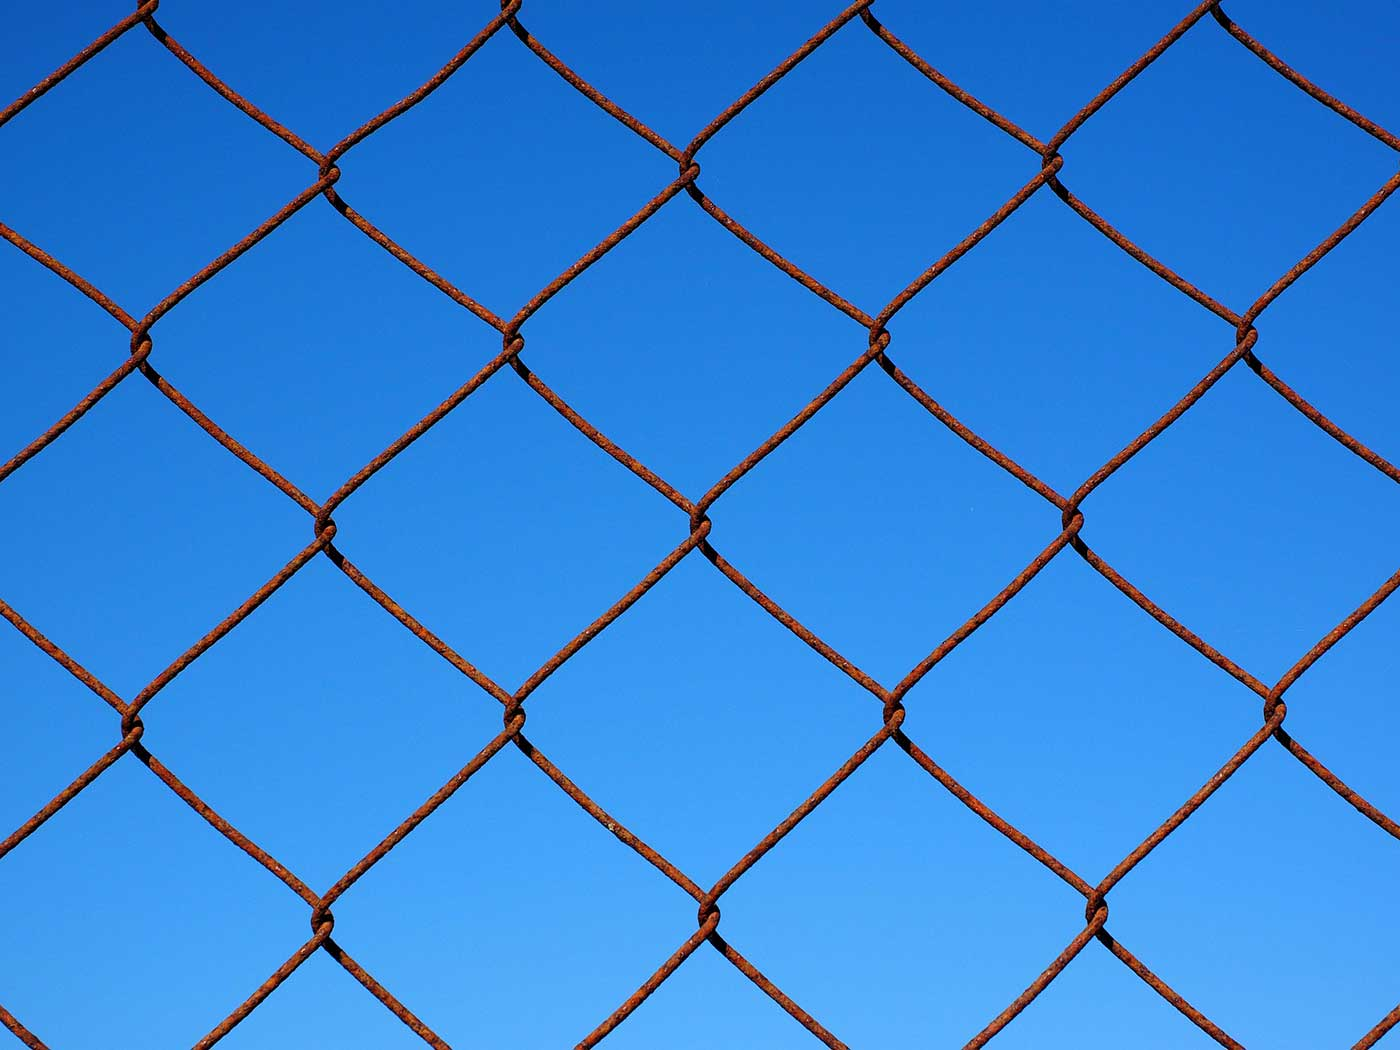 Wire fence against a blue sky